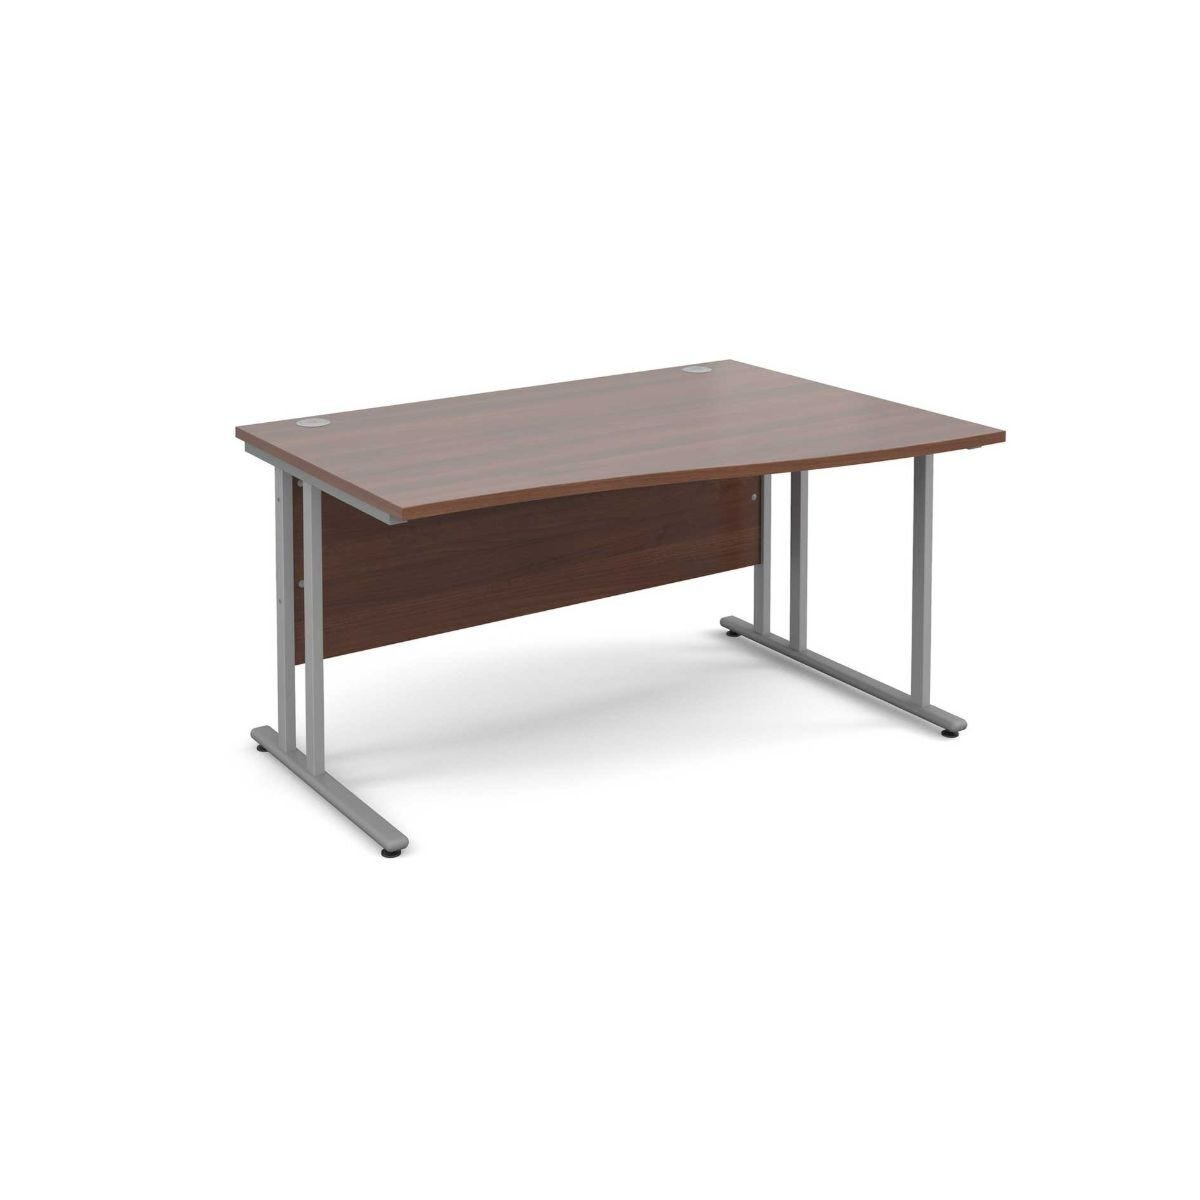 Maestro 25 Right Hand Wave 1400 Desk with Silver Legs Walnut